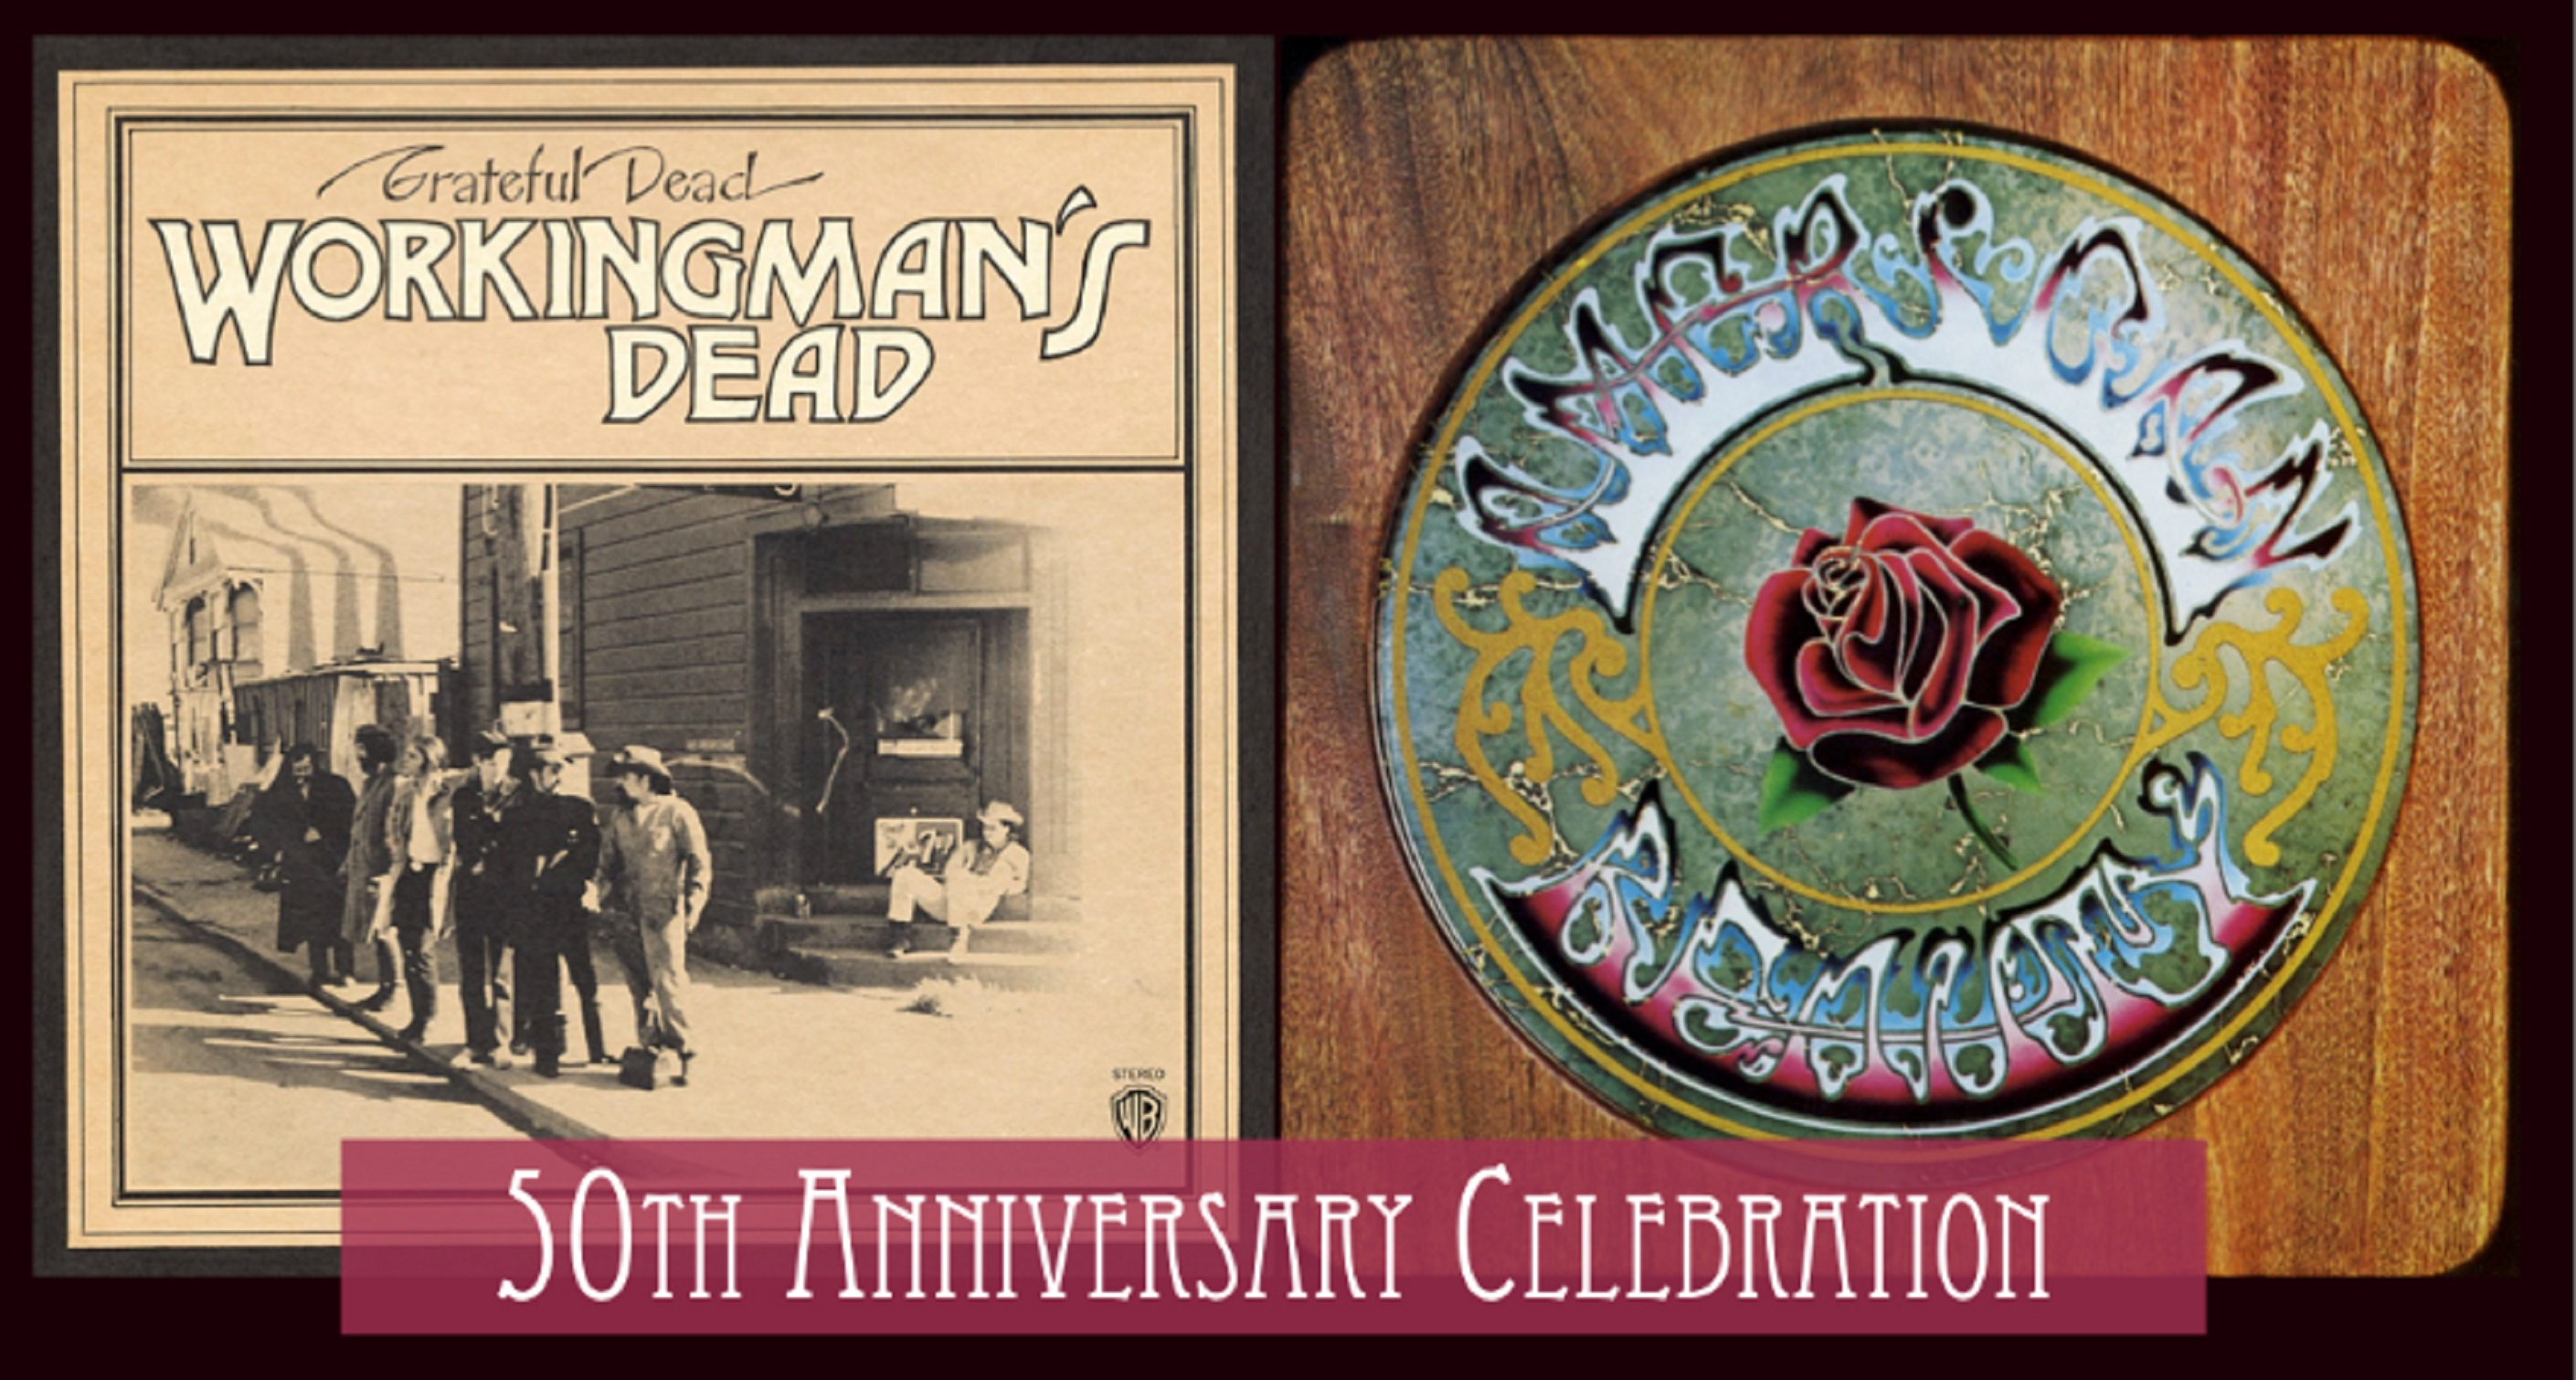 Club Passim and 'Dead to the Core' Celebrate 50 Years of Two Iconic Grateful Dead Albums